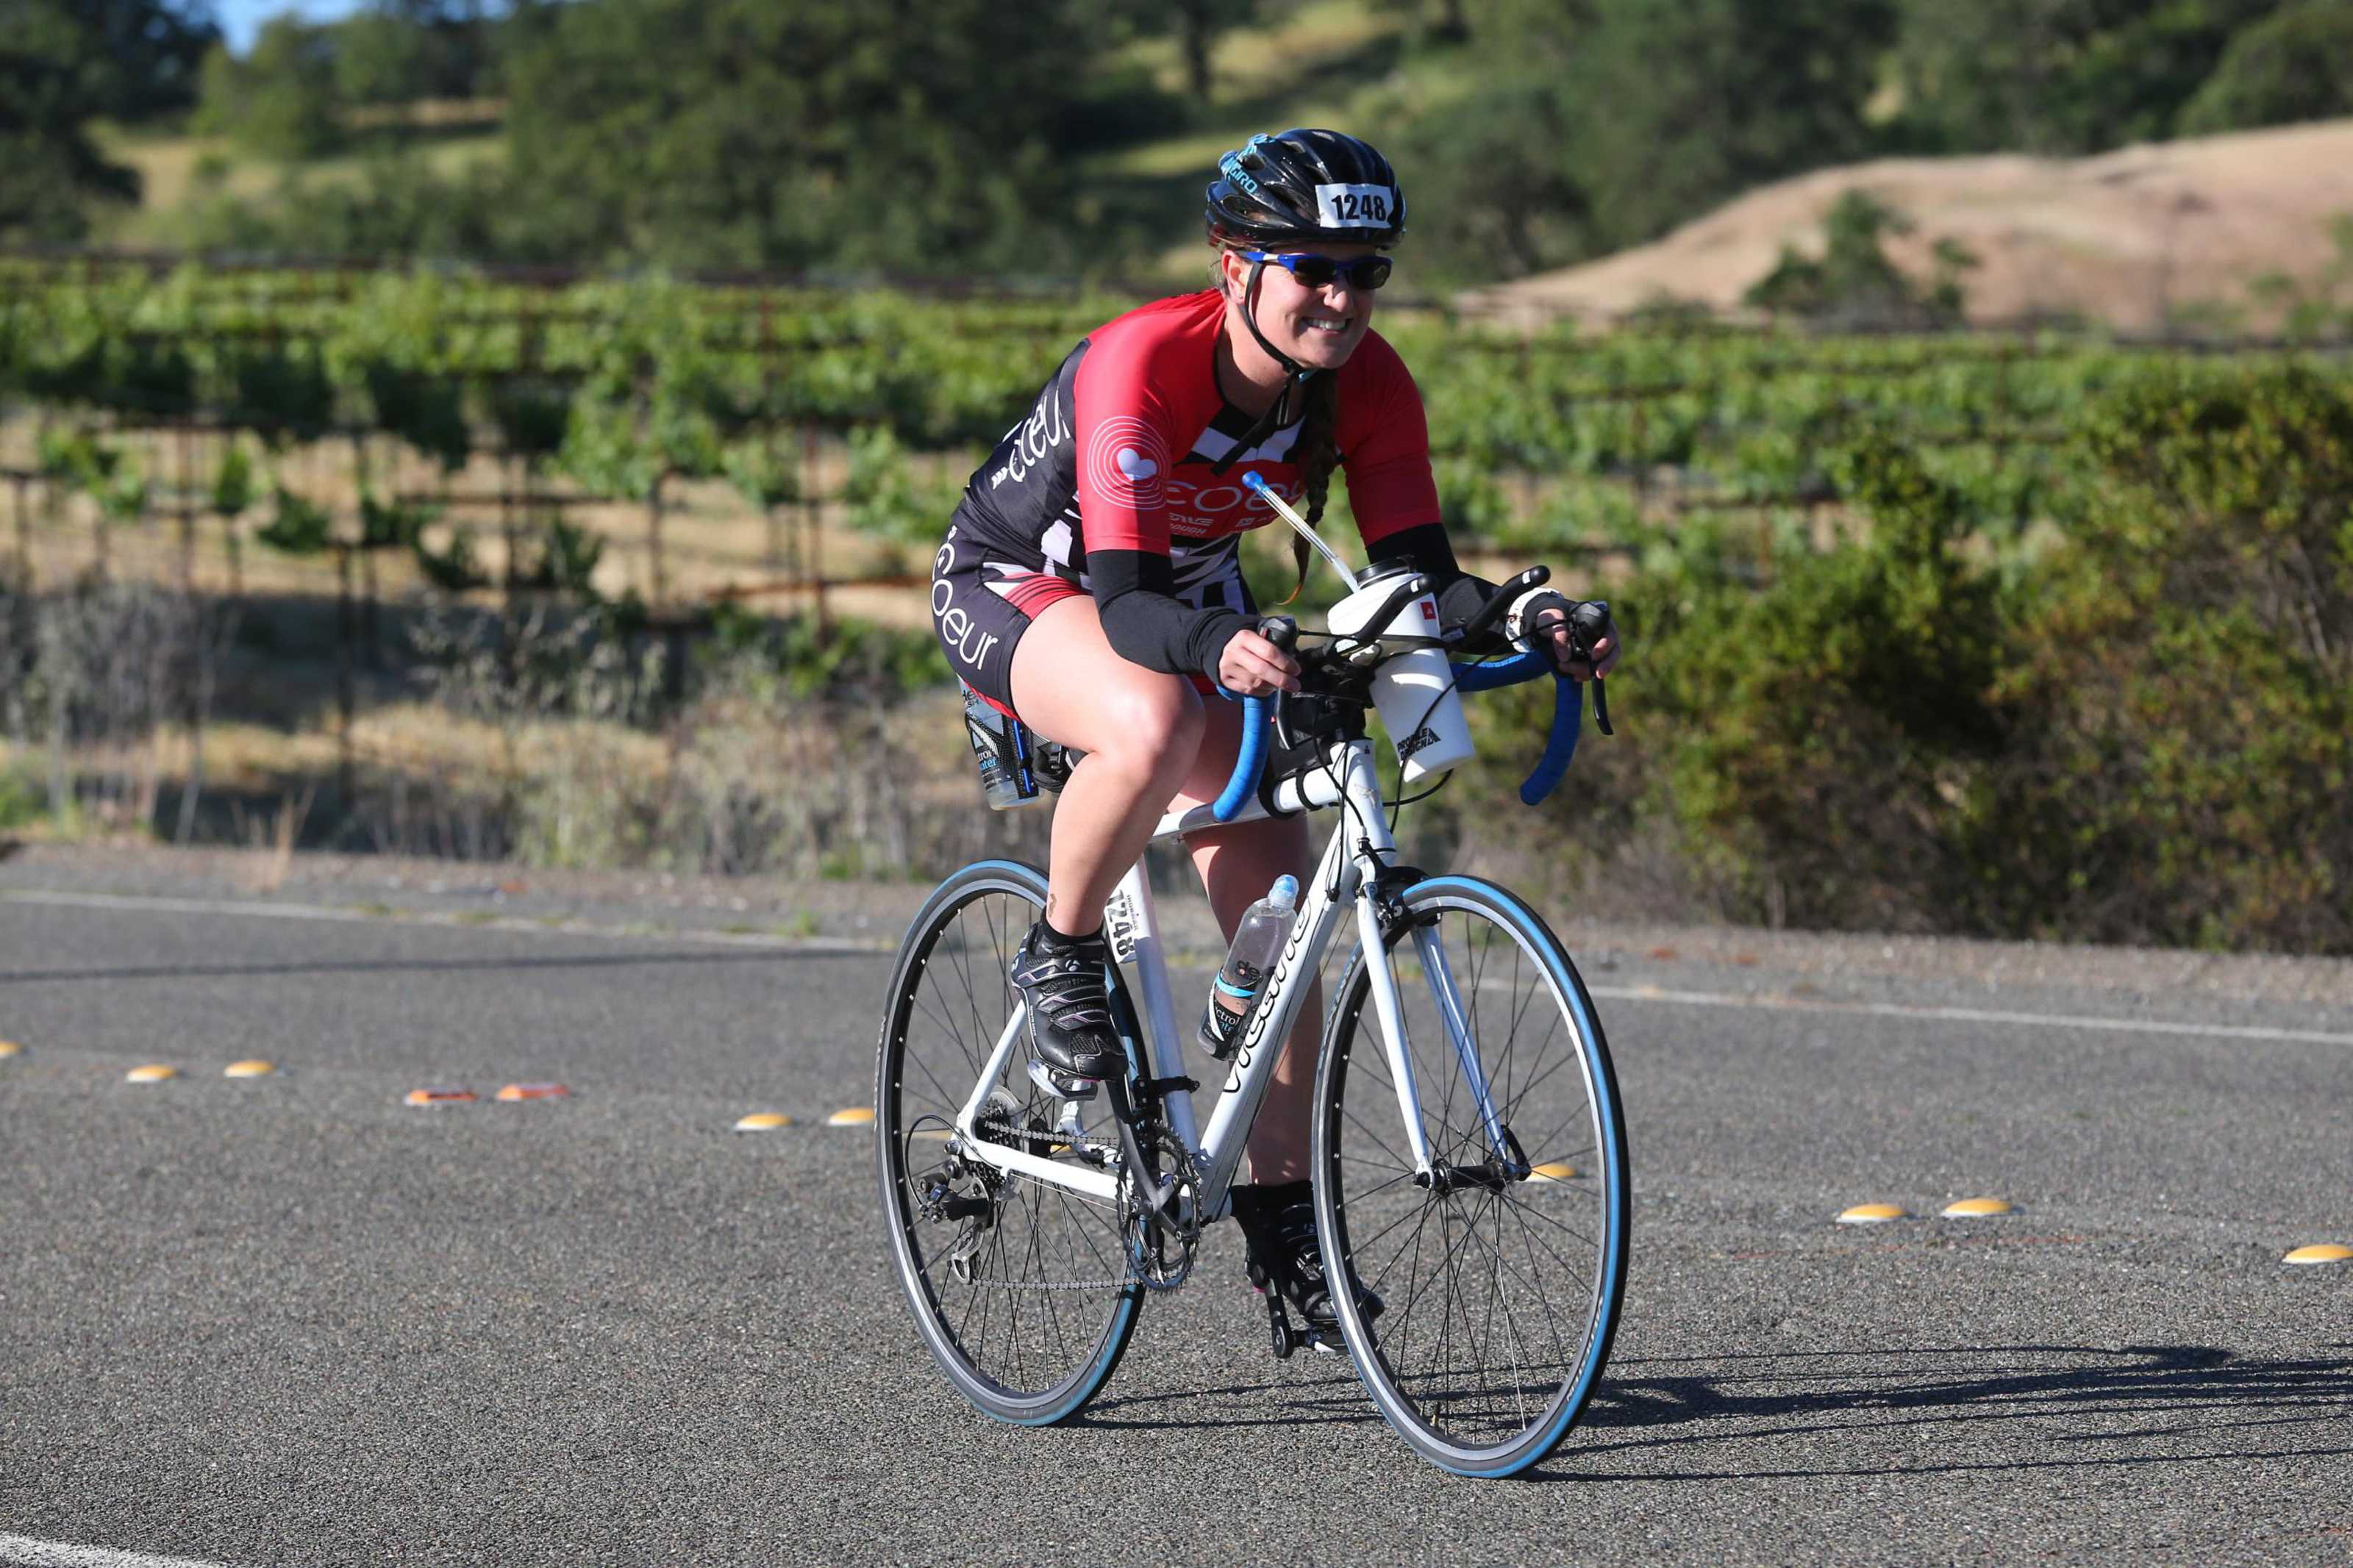 Ironman Santa Rosa 70.3 2017 Race Report – Bike